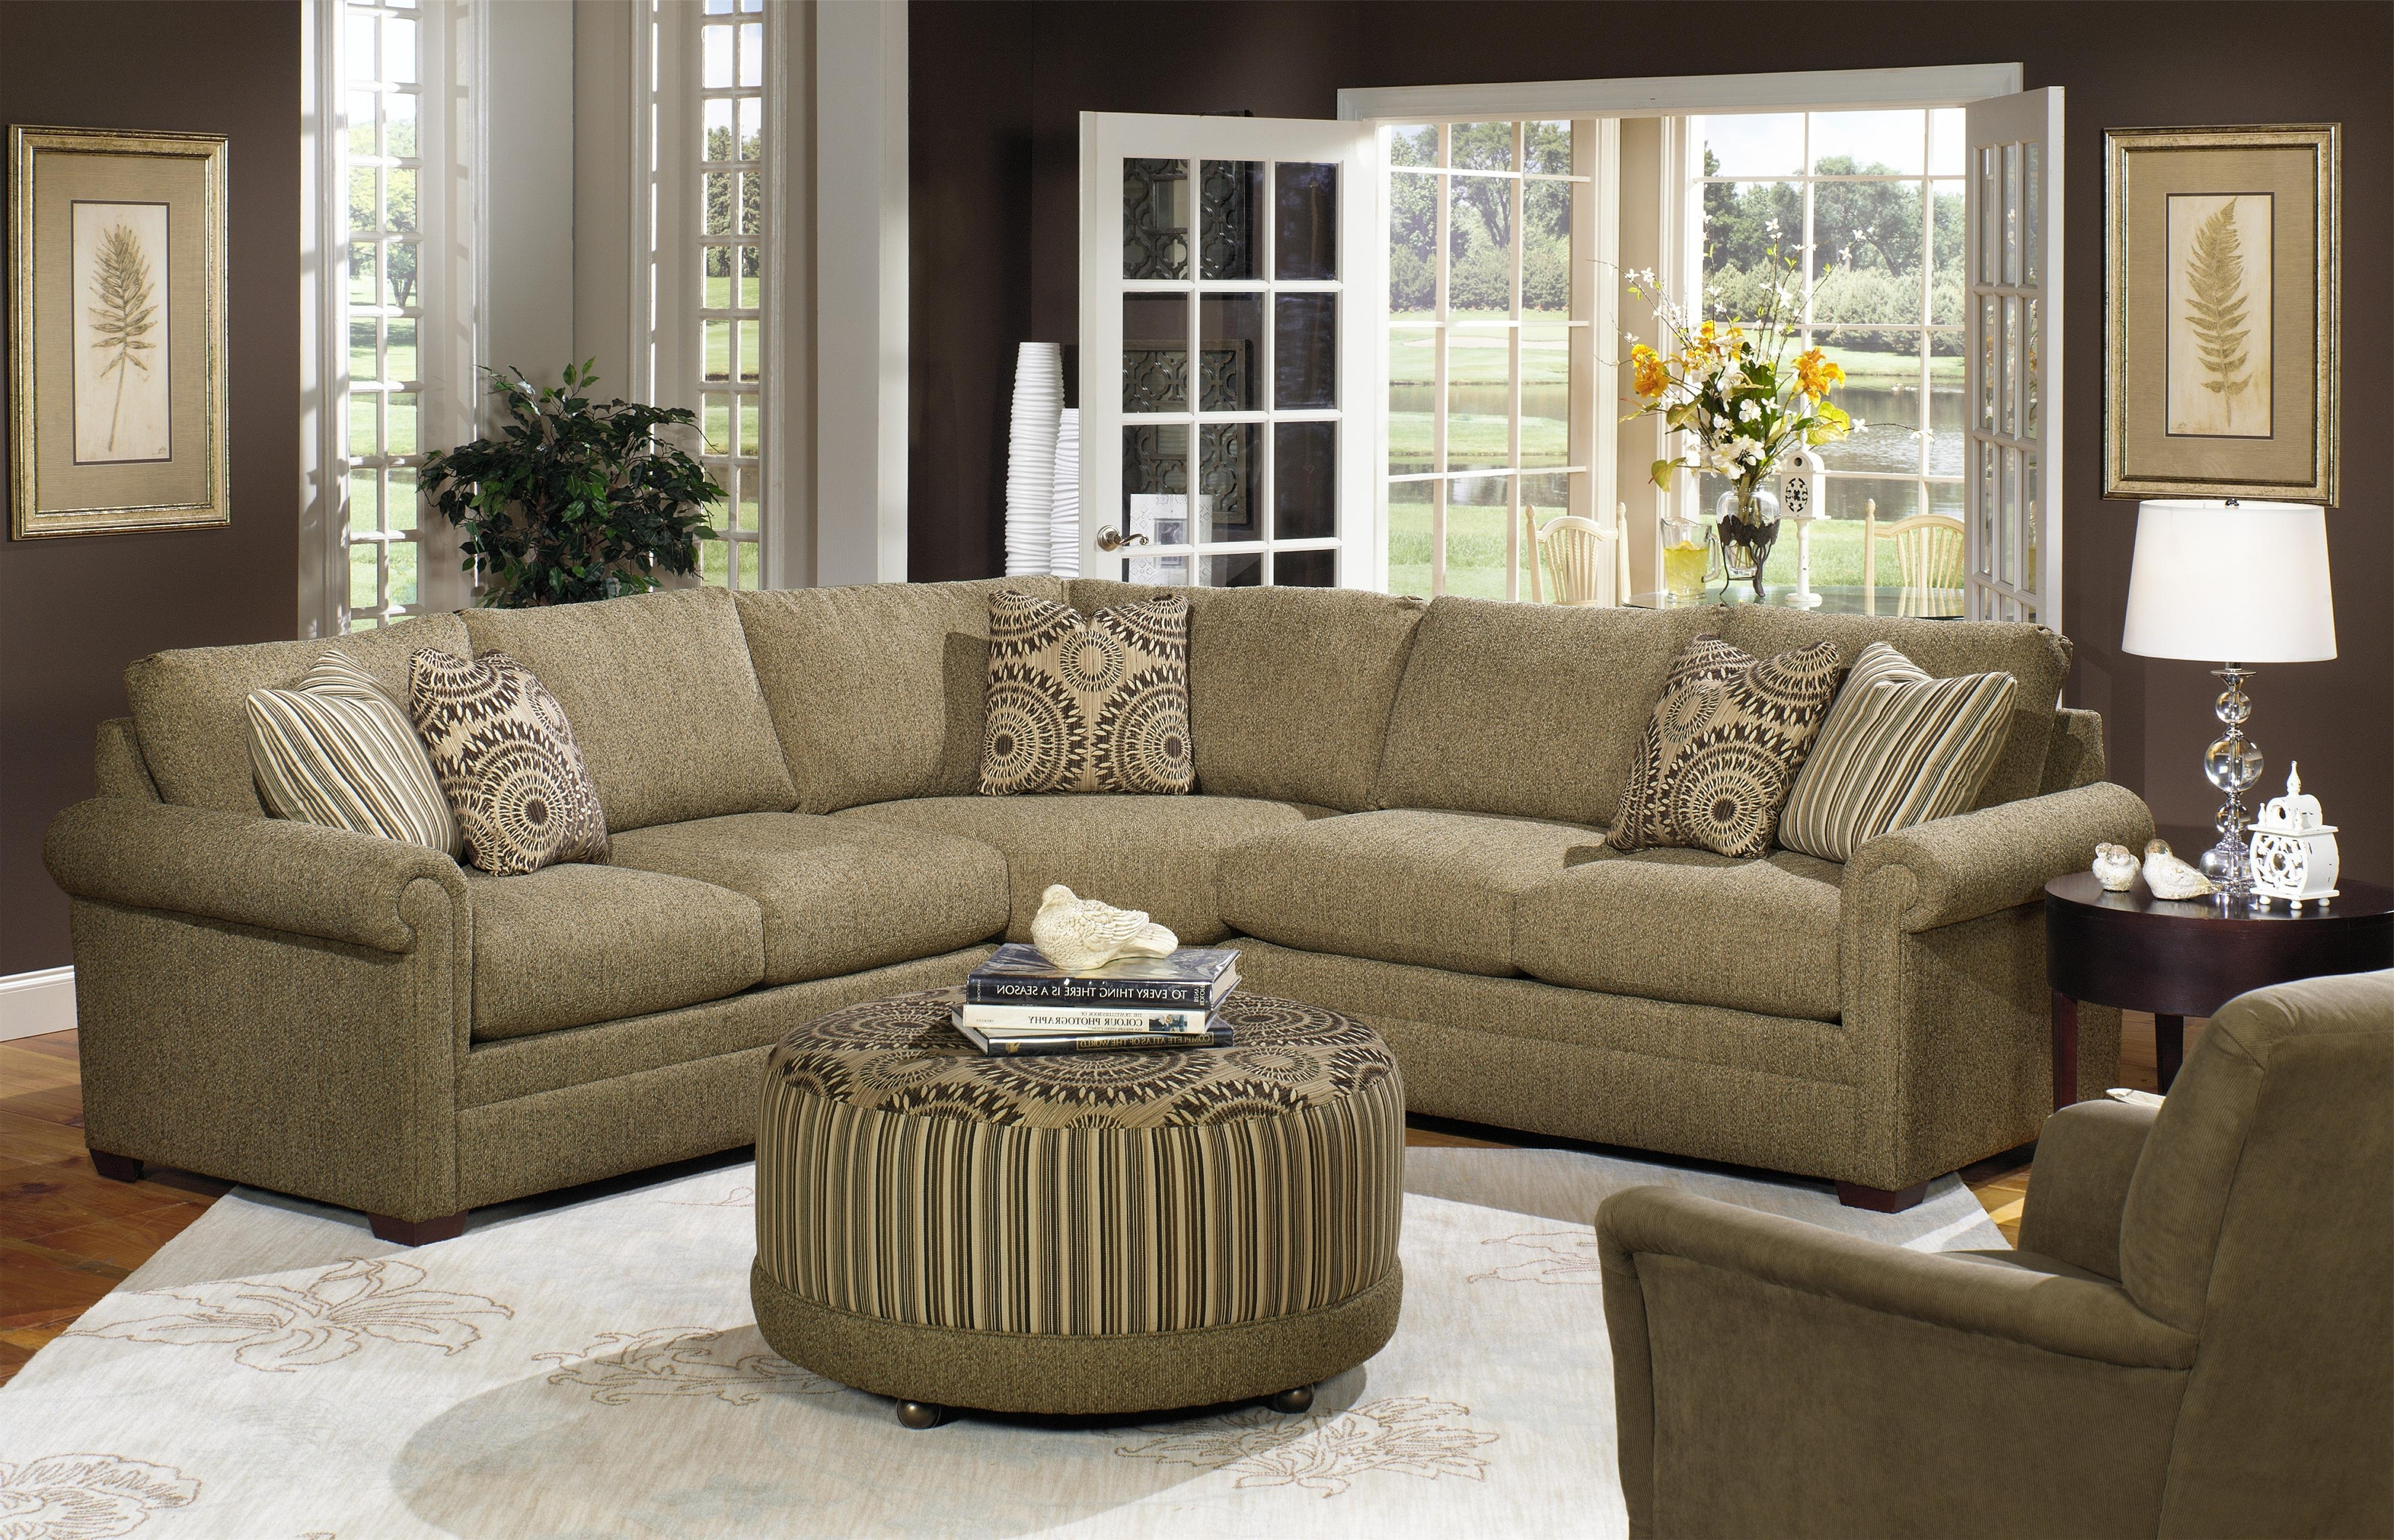 Current Craftmaster F9 Custom Collection Customizable Three Piece Intended For Craftsman Sectional Sofas (View 6 of 20)